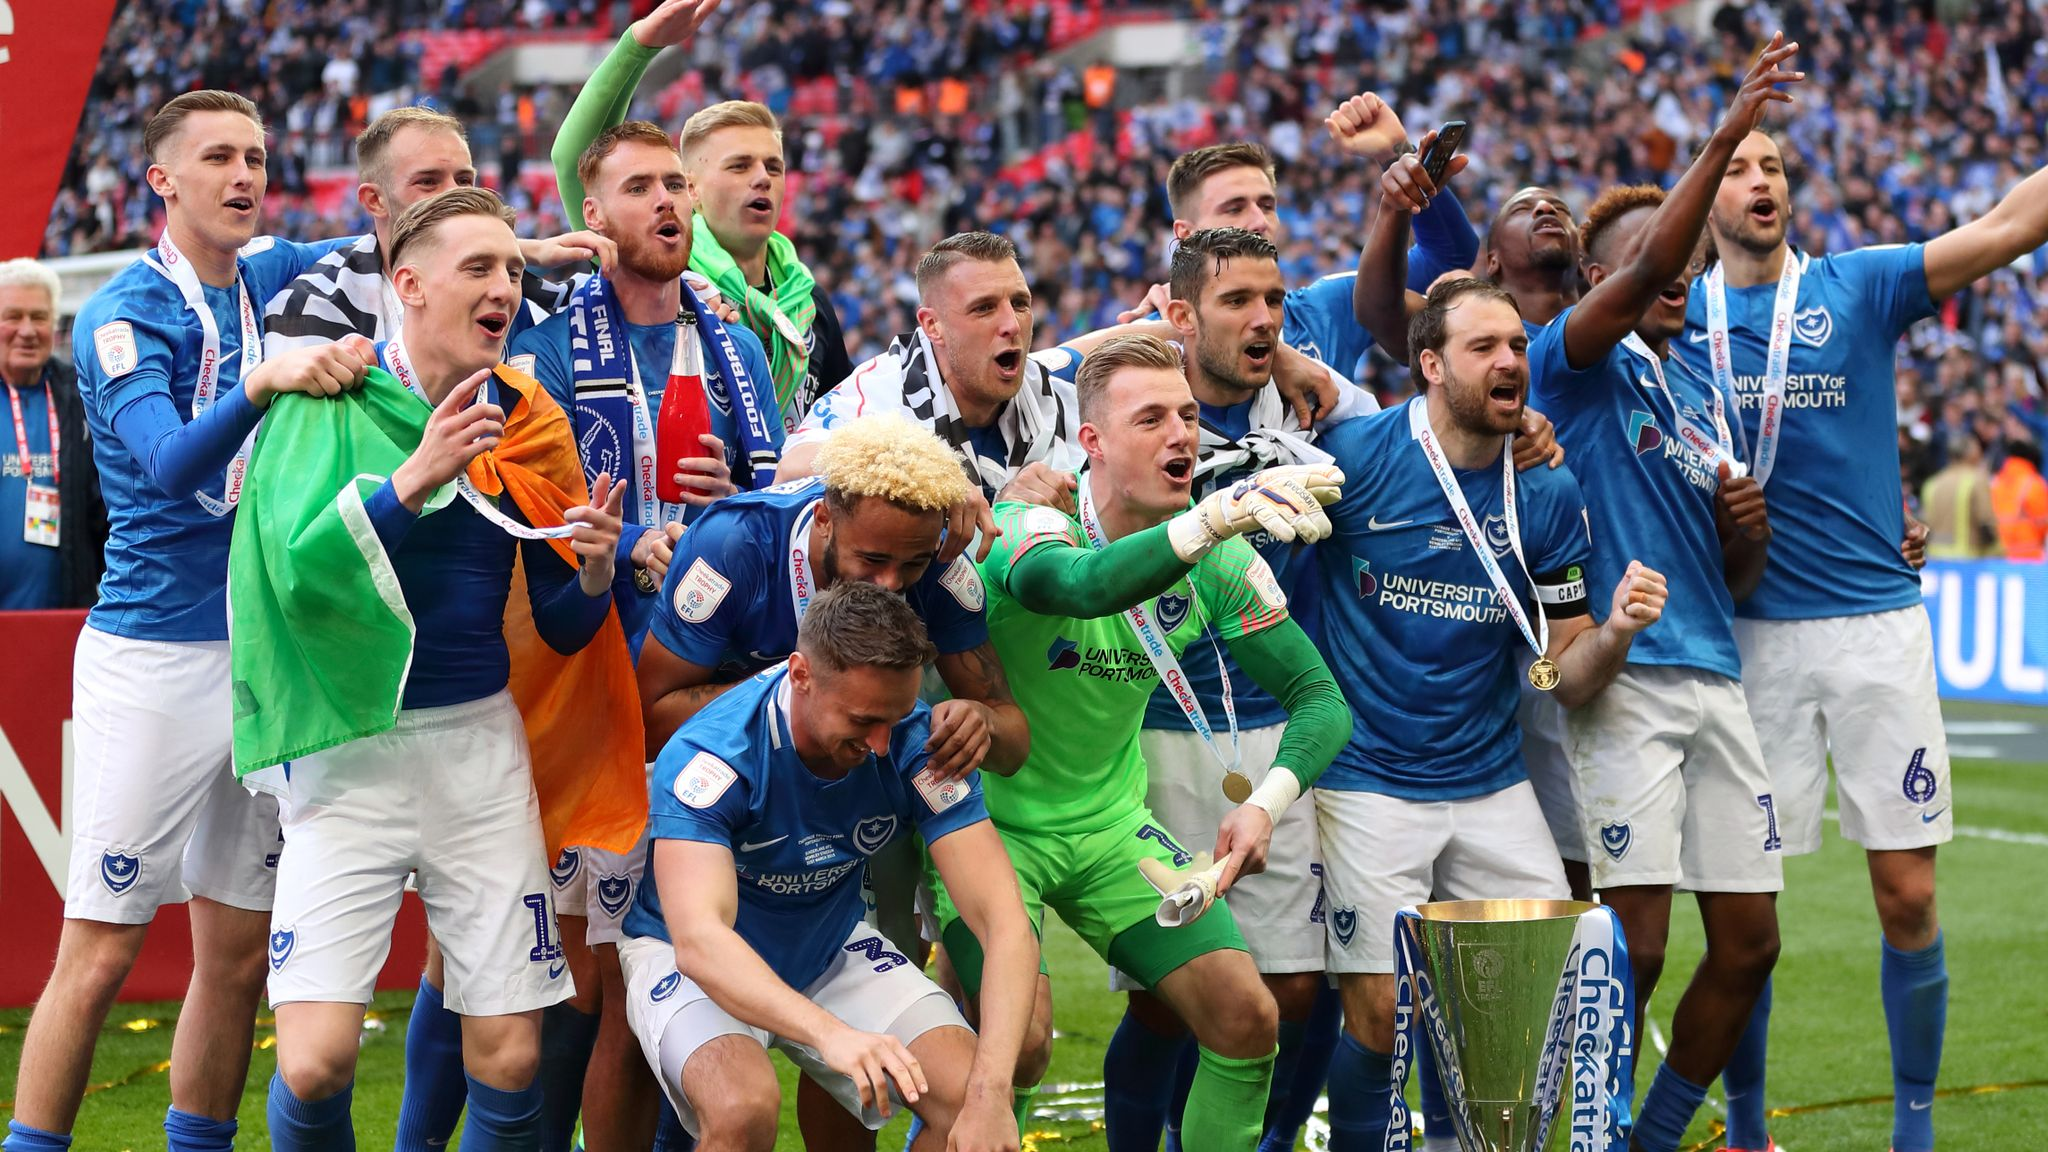 Leasing.com Trophy: Portsmouth at home to Scunthorpe in quarter-finals